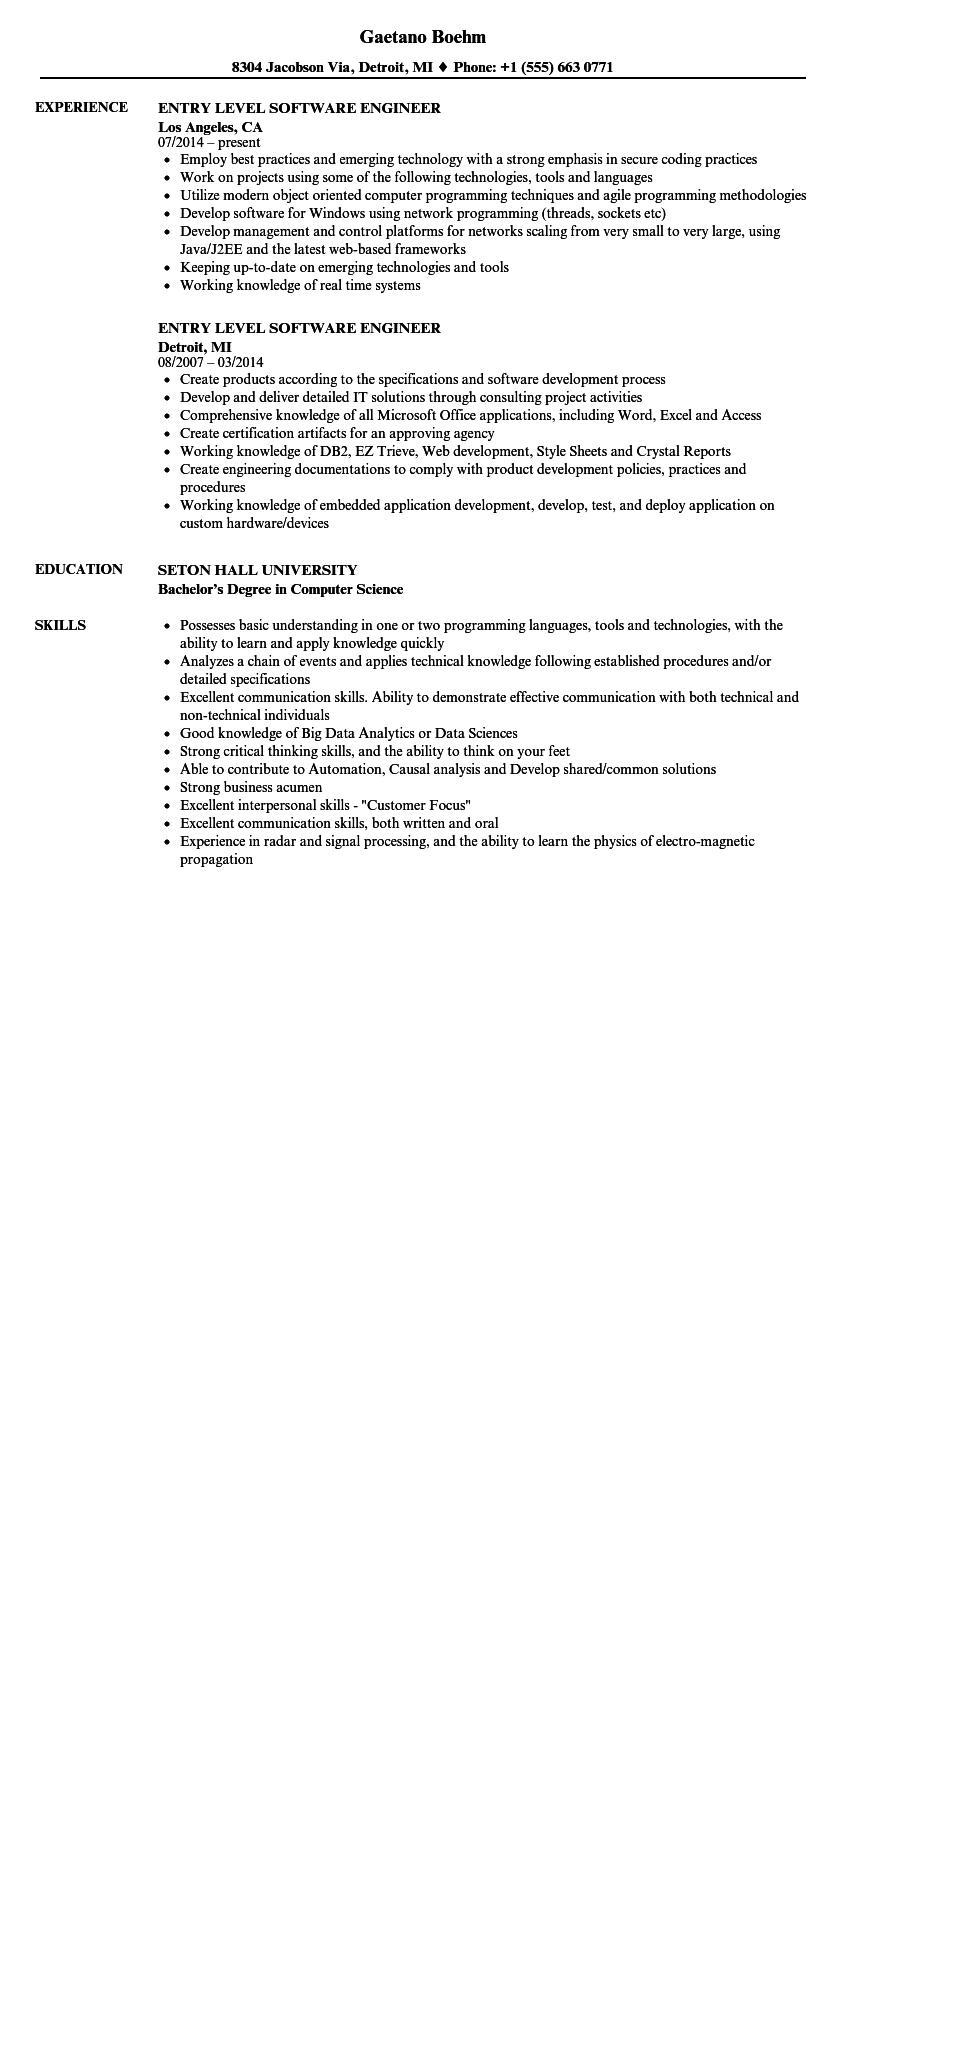 84 Nice Entry Level Software Engineer Resume with Ideas